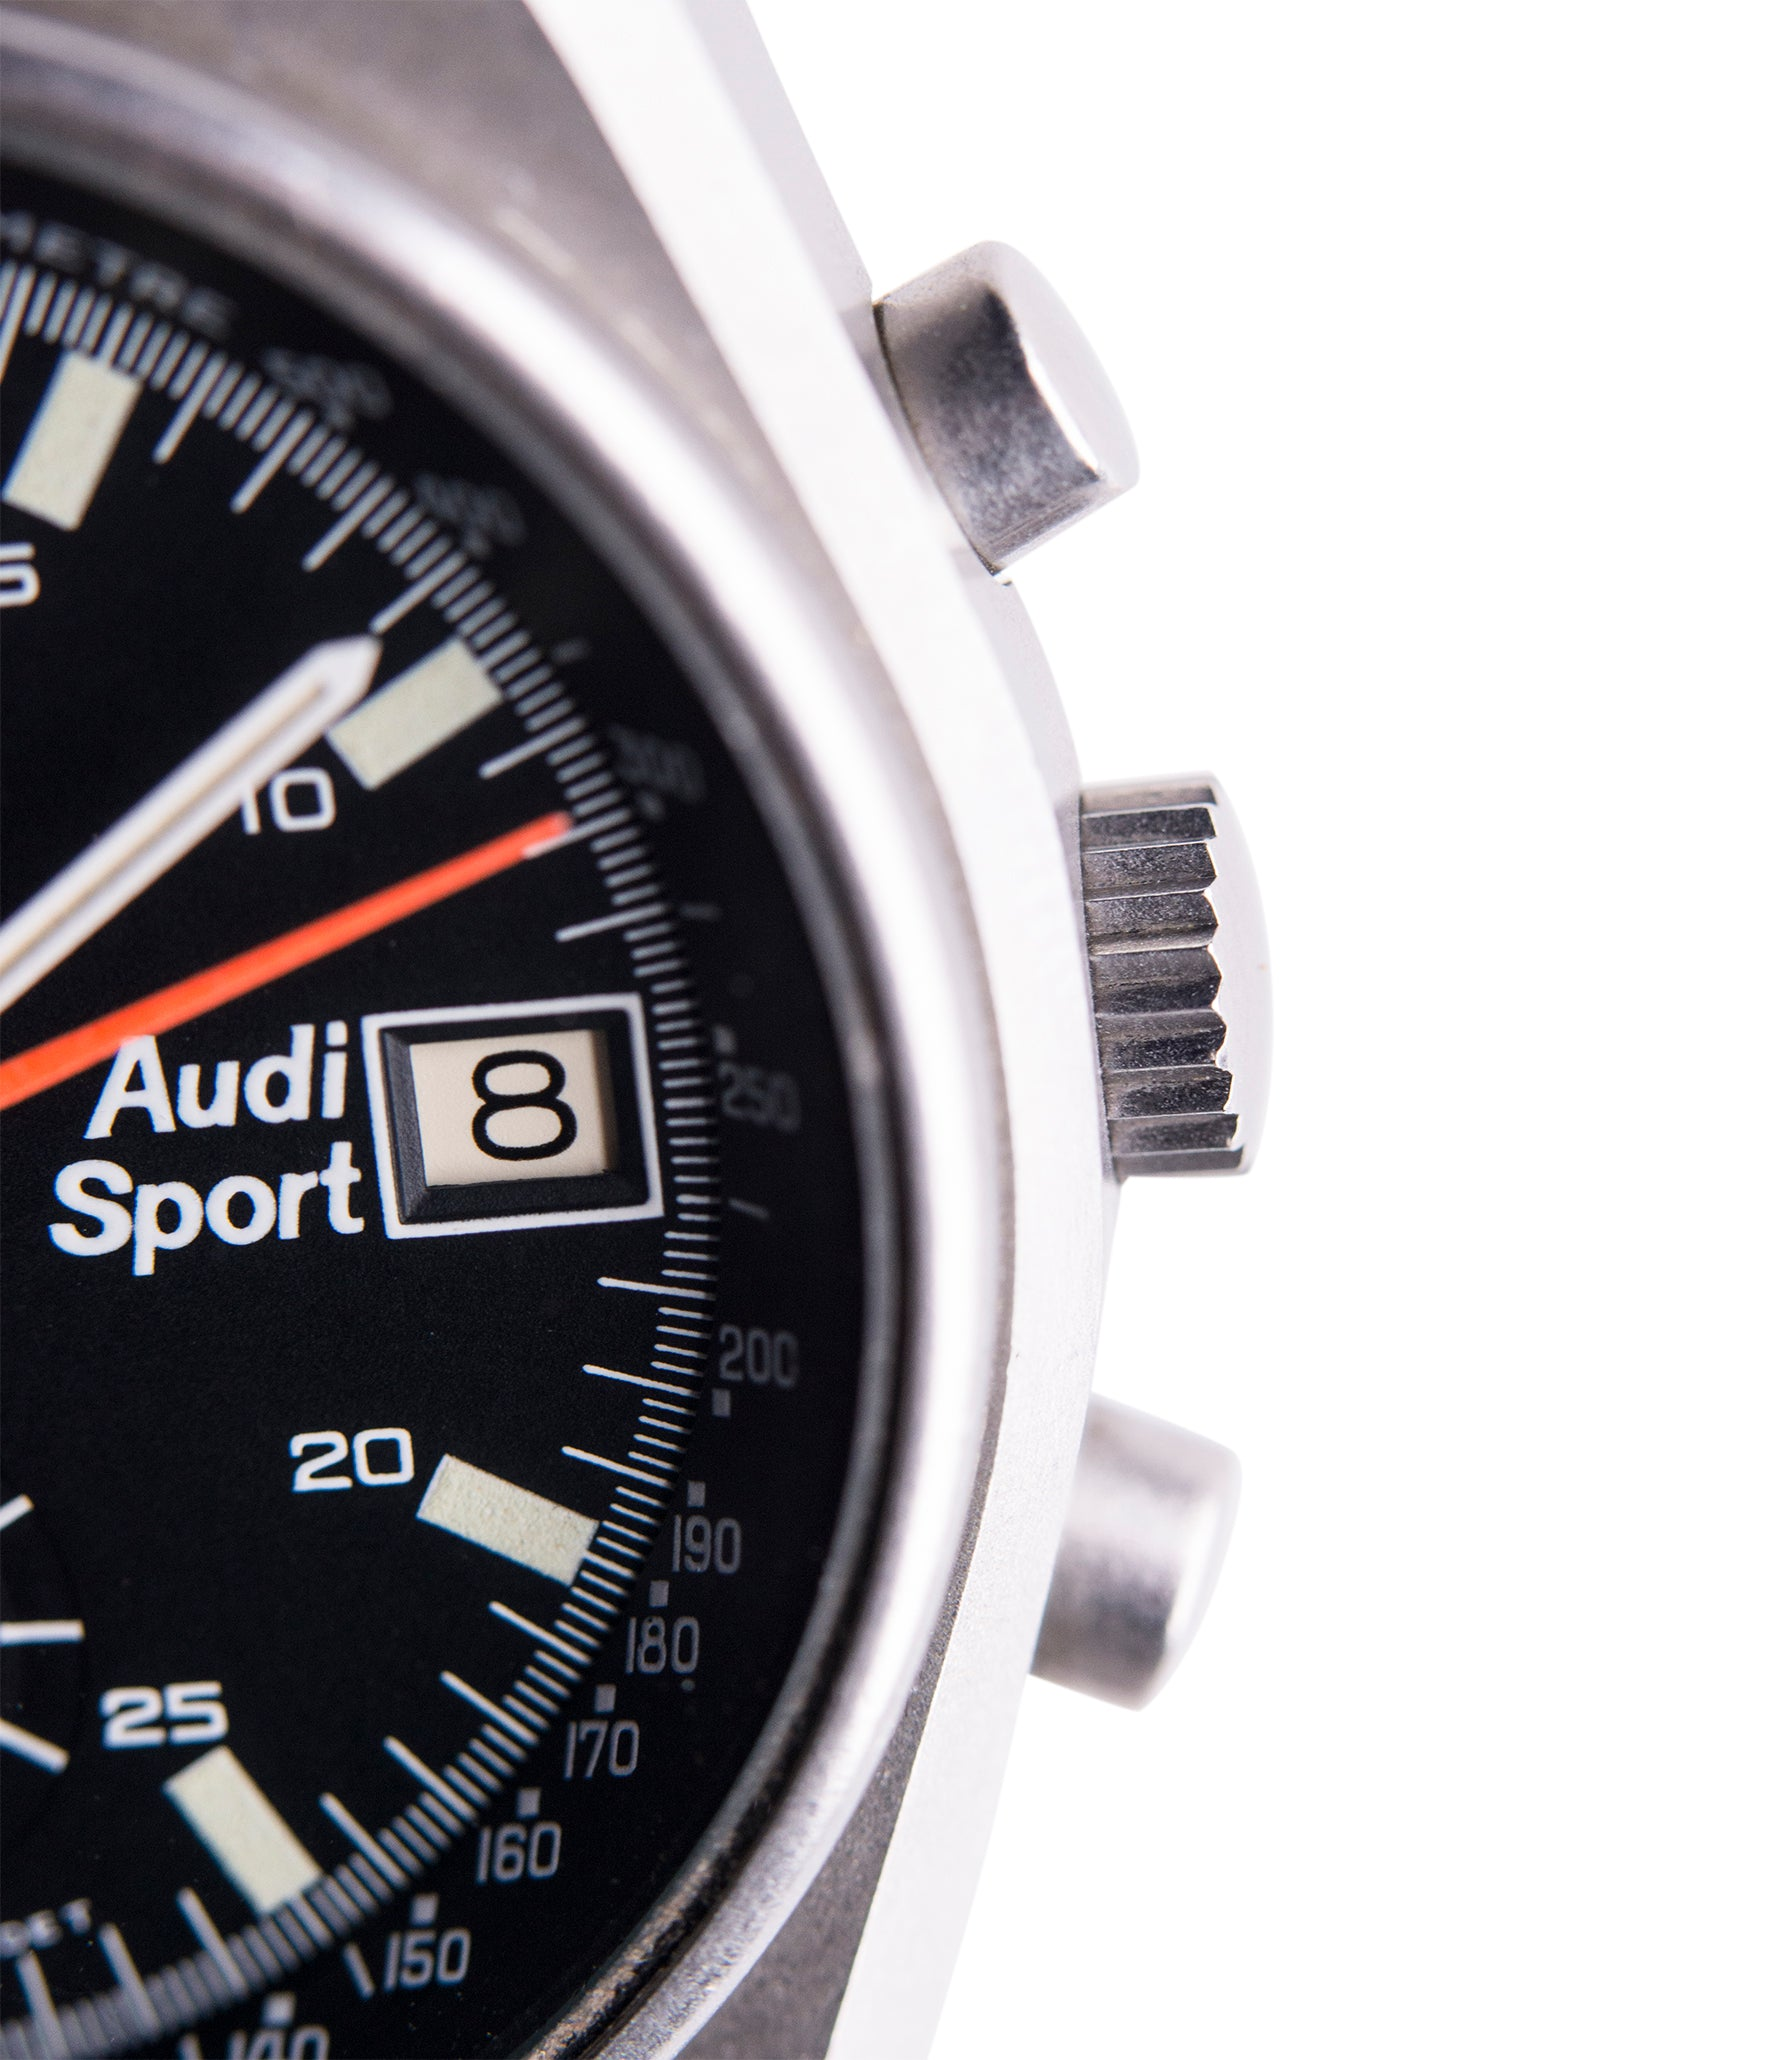 chronograph Heuer Sport Audi 510.533 vintage steel chronograph watch for sale online at A Collected Man London UK specialist of rare vintage watches